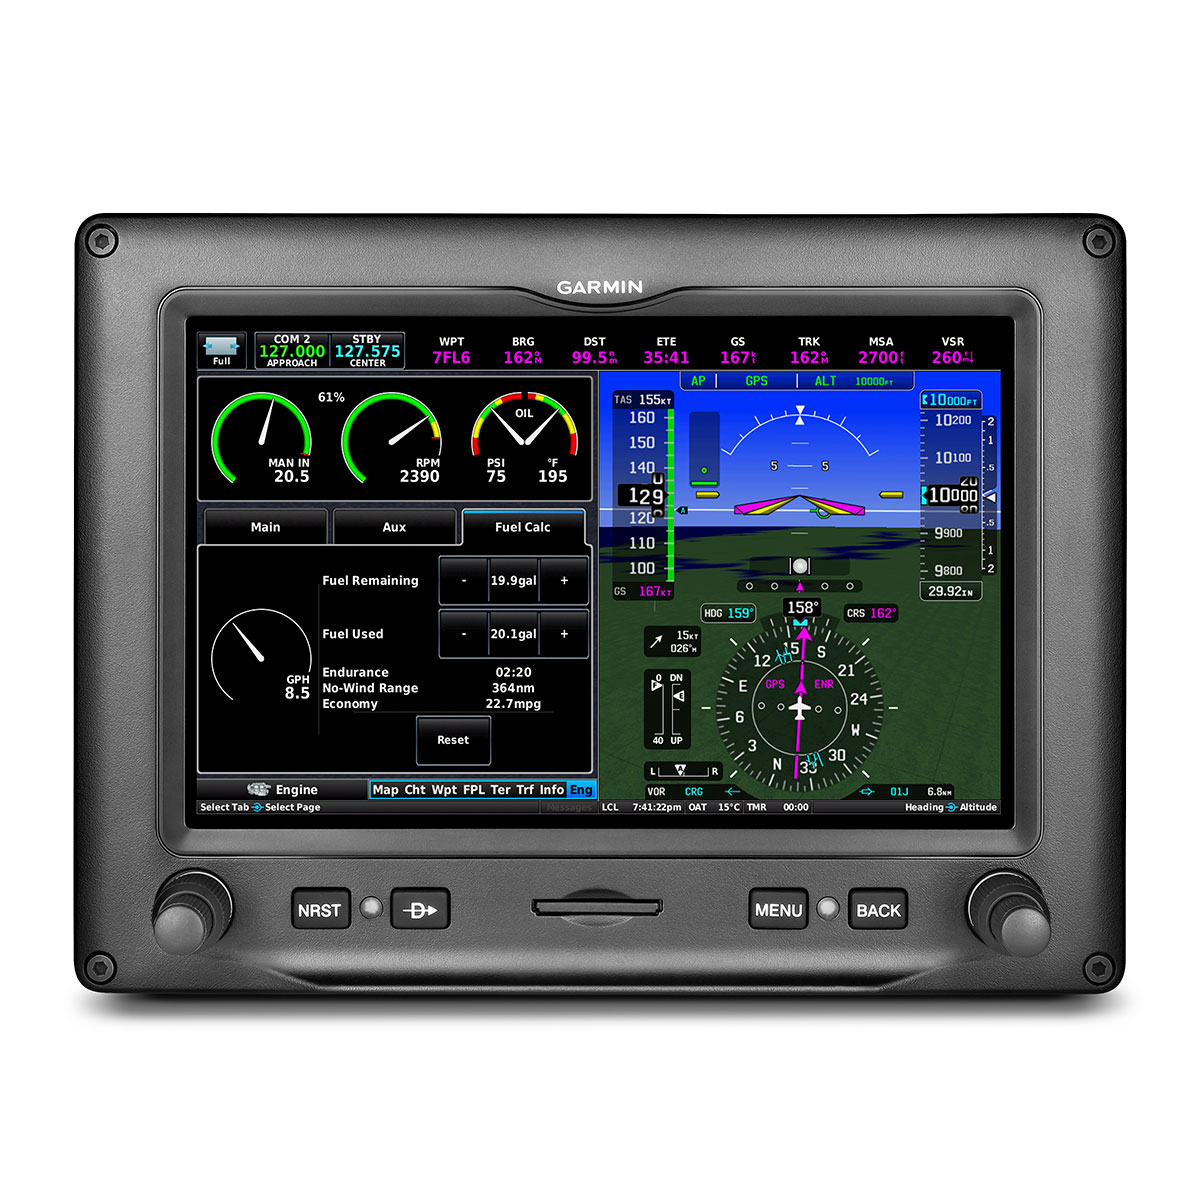 /images/productimages/GARMIN/G3XTOUCH-7INCH-1.jpg image